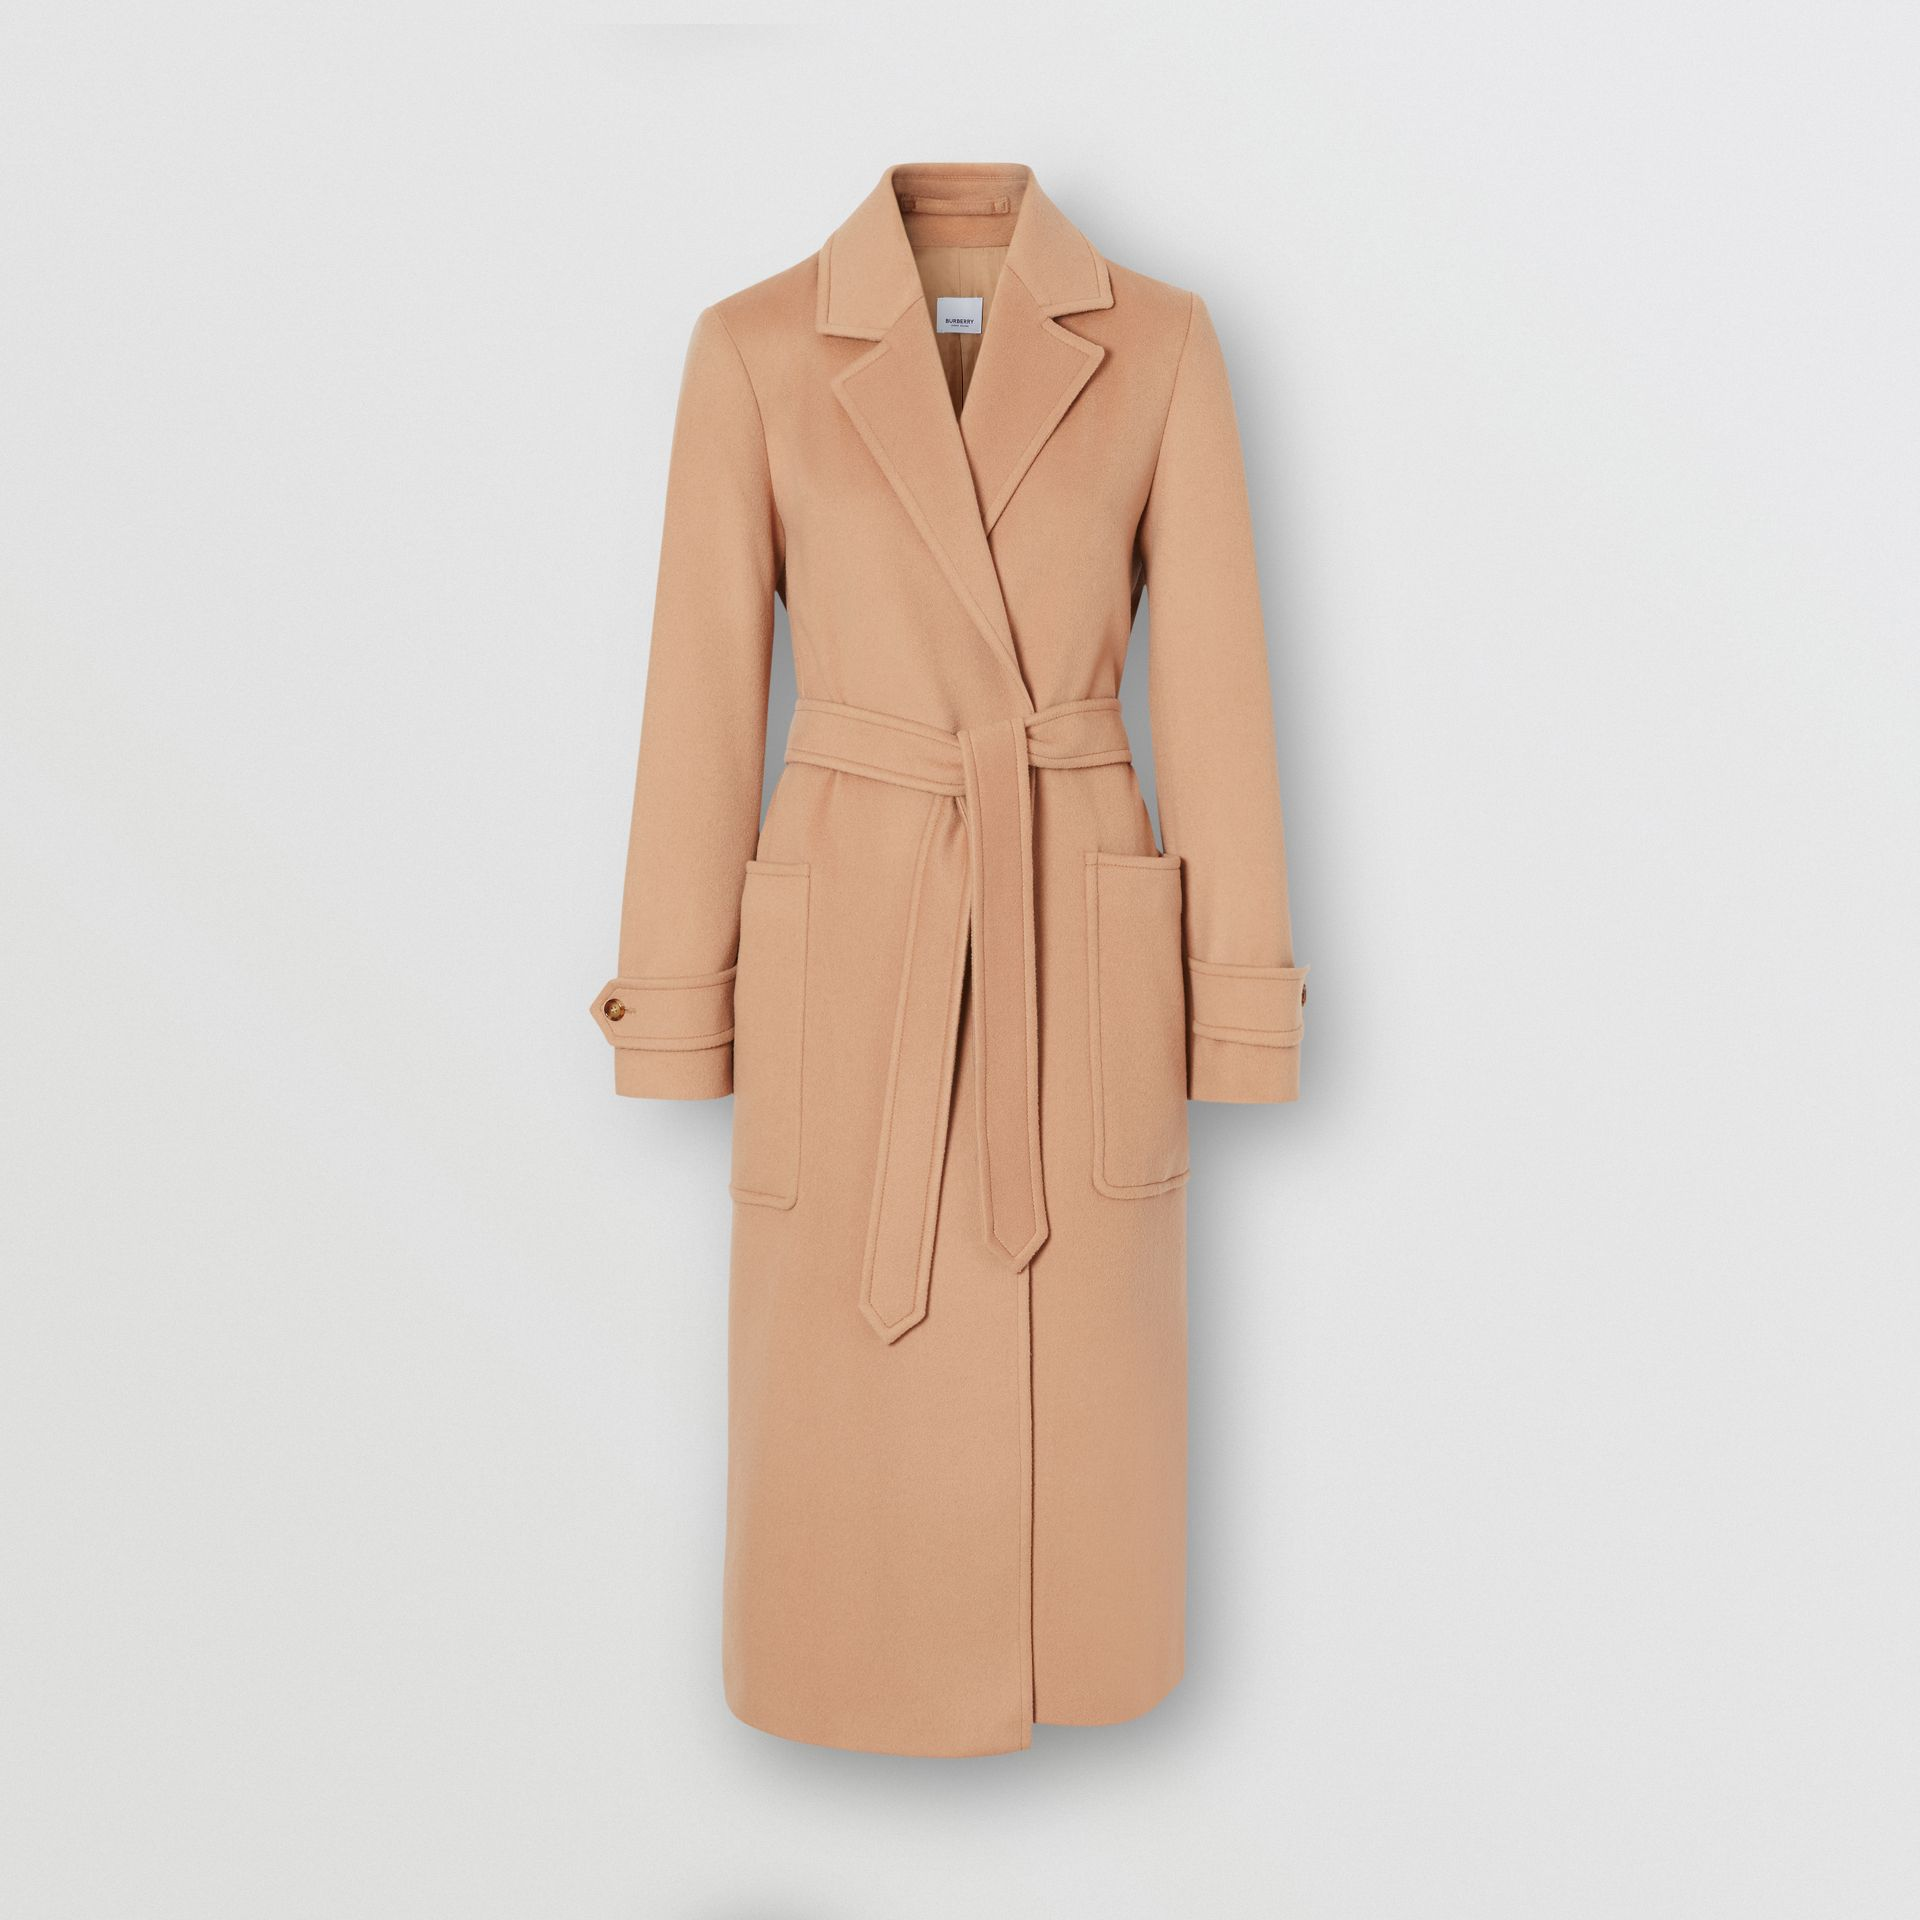 Cashmere Wrap Coat in Modern Beige - Women | Burberry - gallery image 3